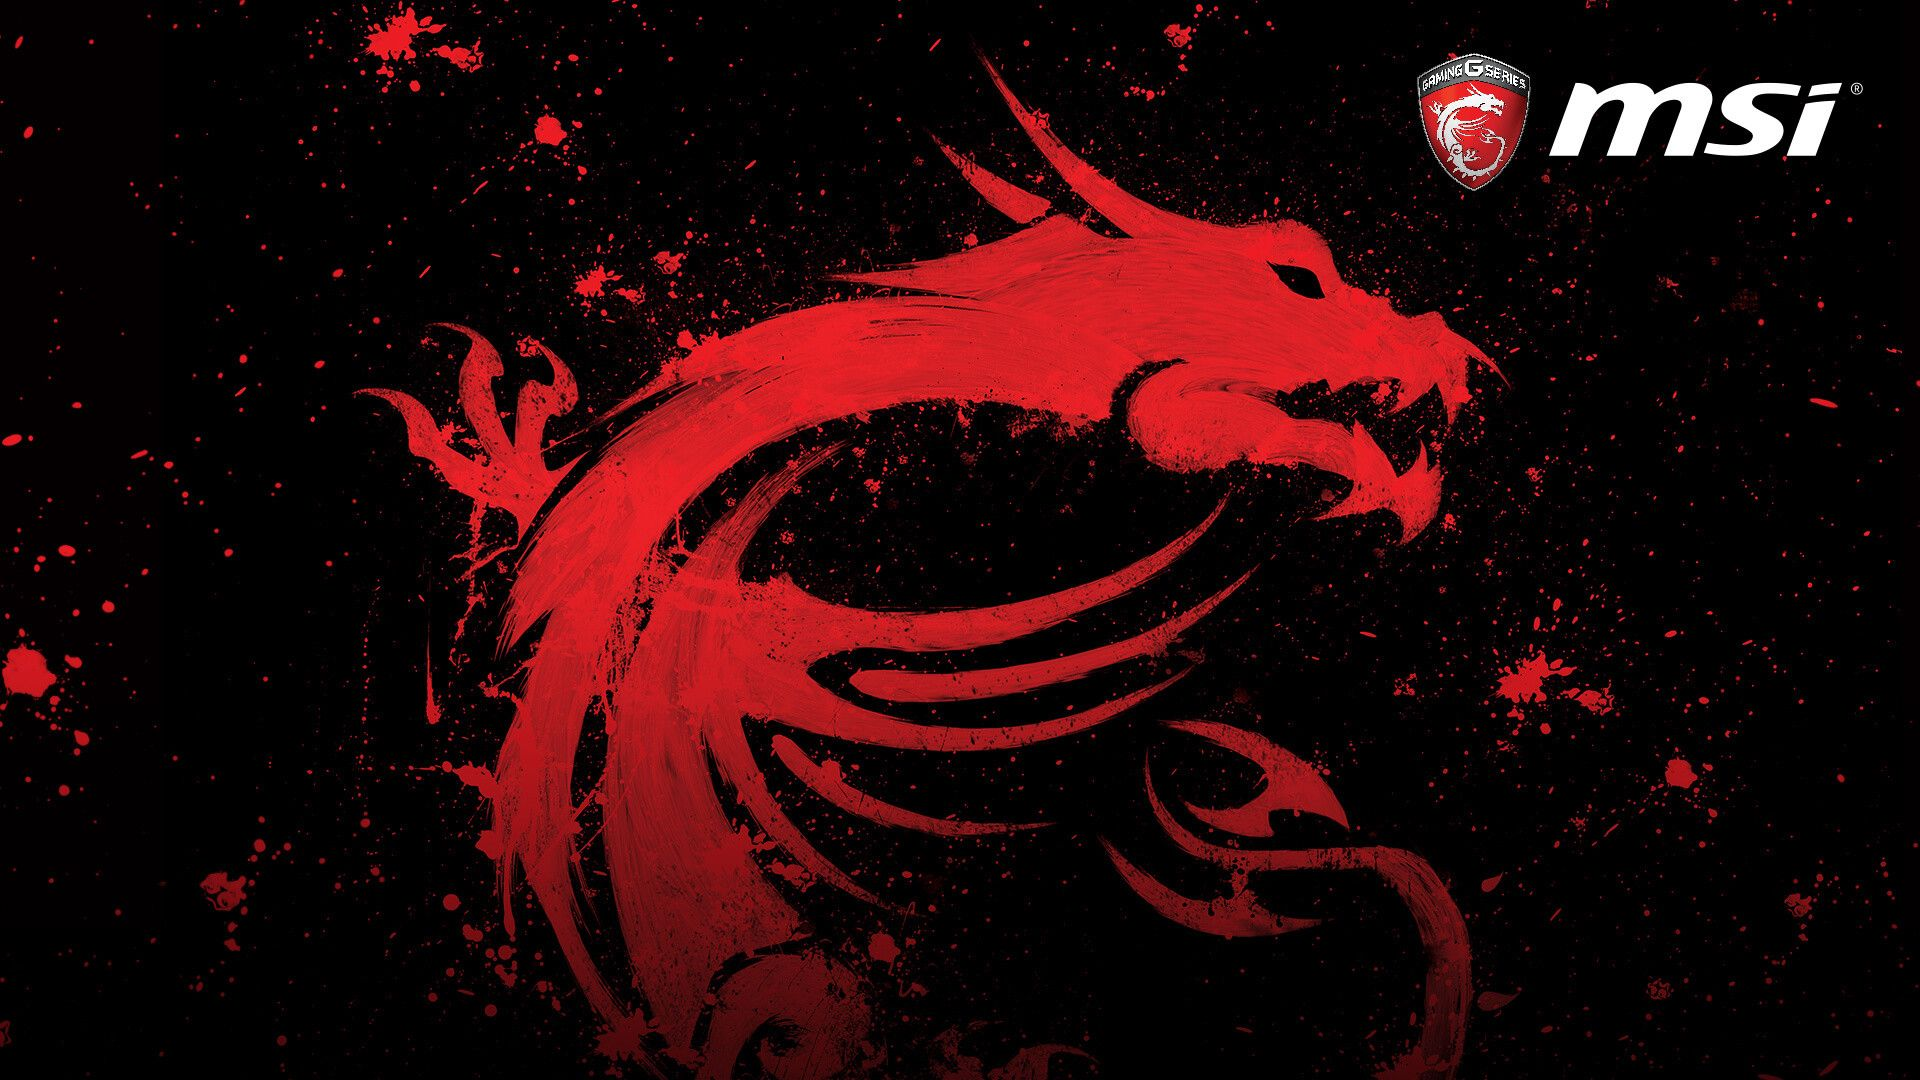 Msi 4k Wallpapers Top Free Msi 4k Backgrounds